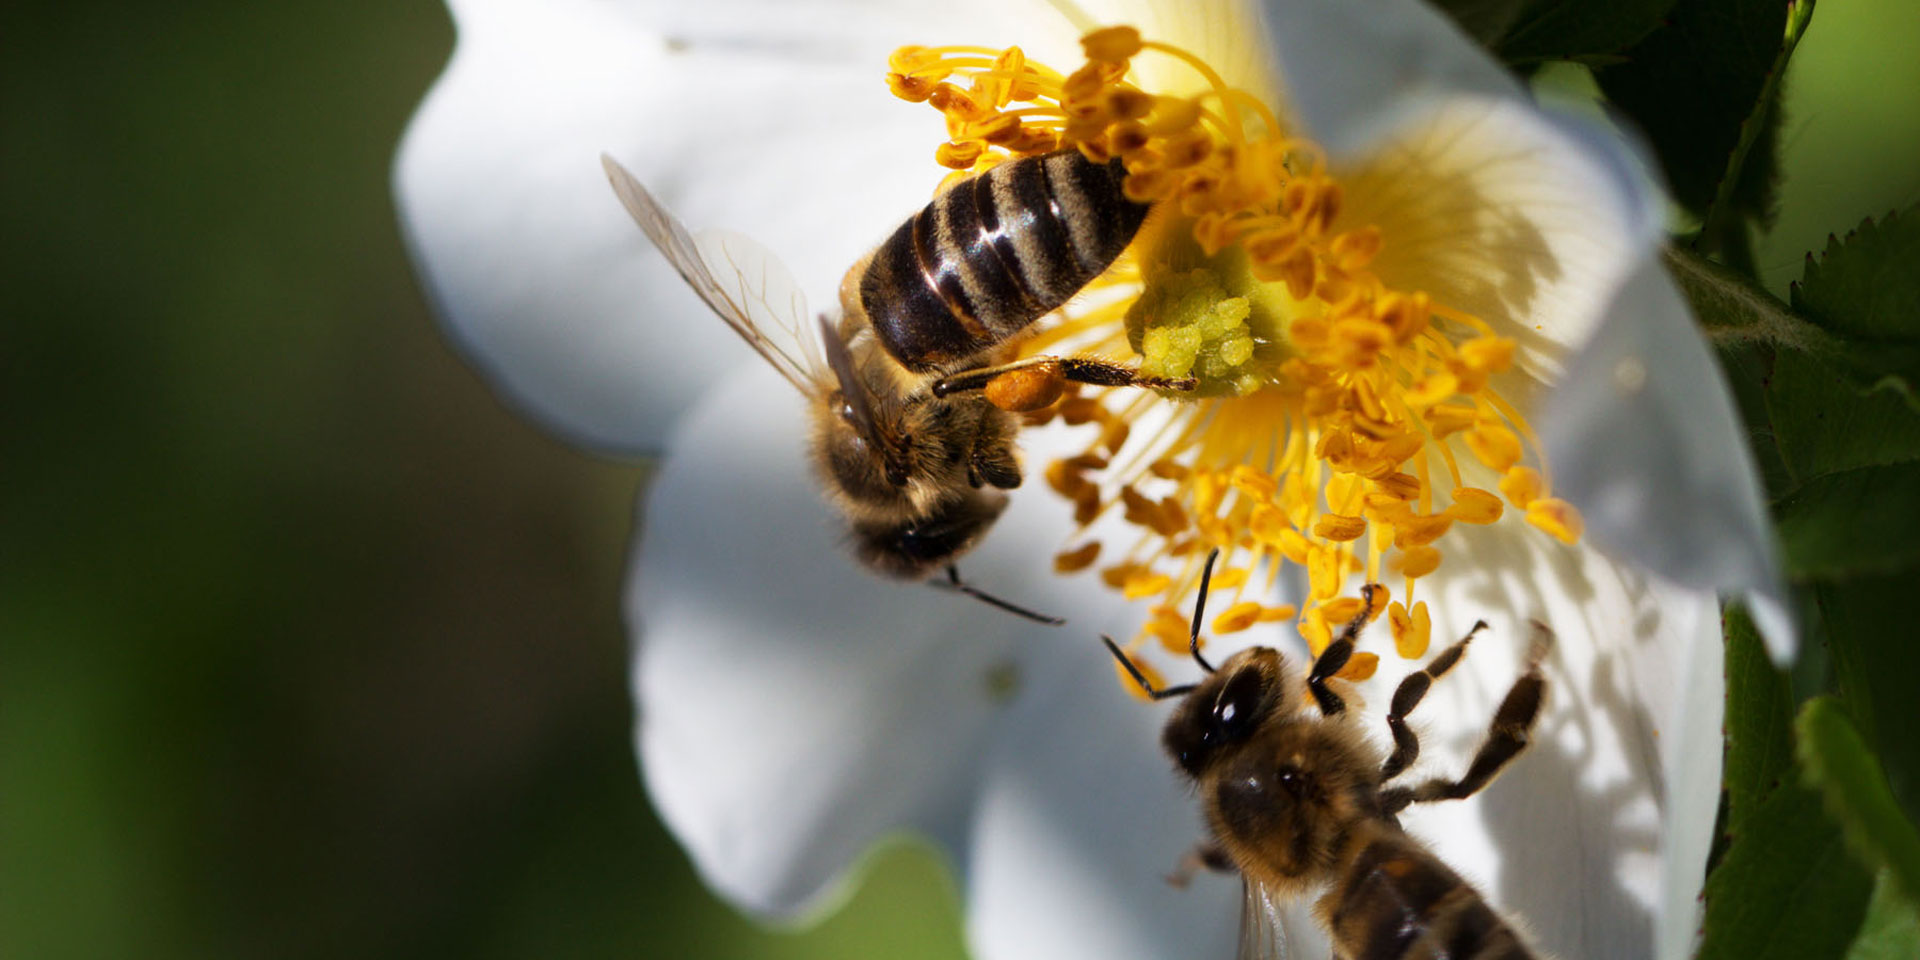 MEBW_Pic_Shutterstock_bees-on-white-flower-crop.jpg